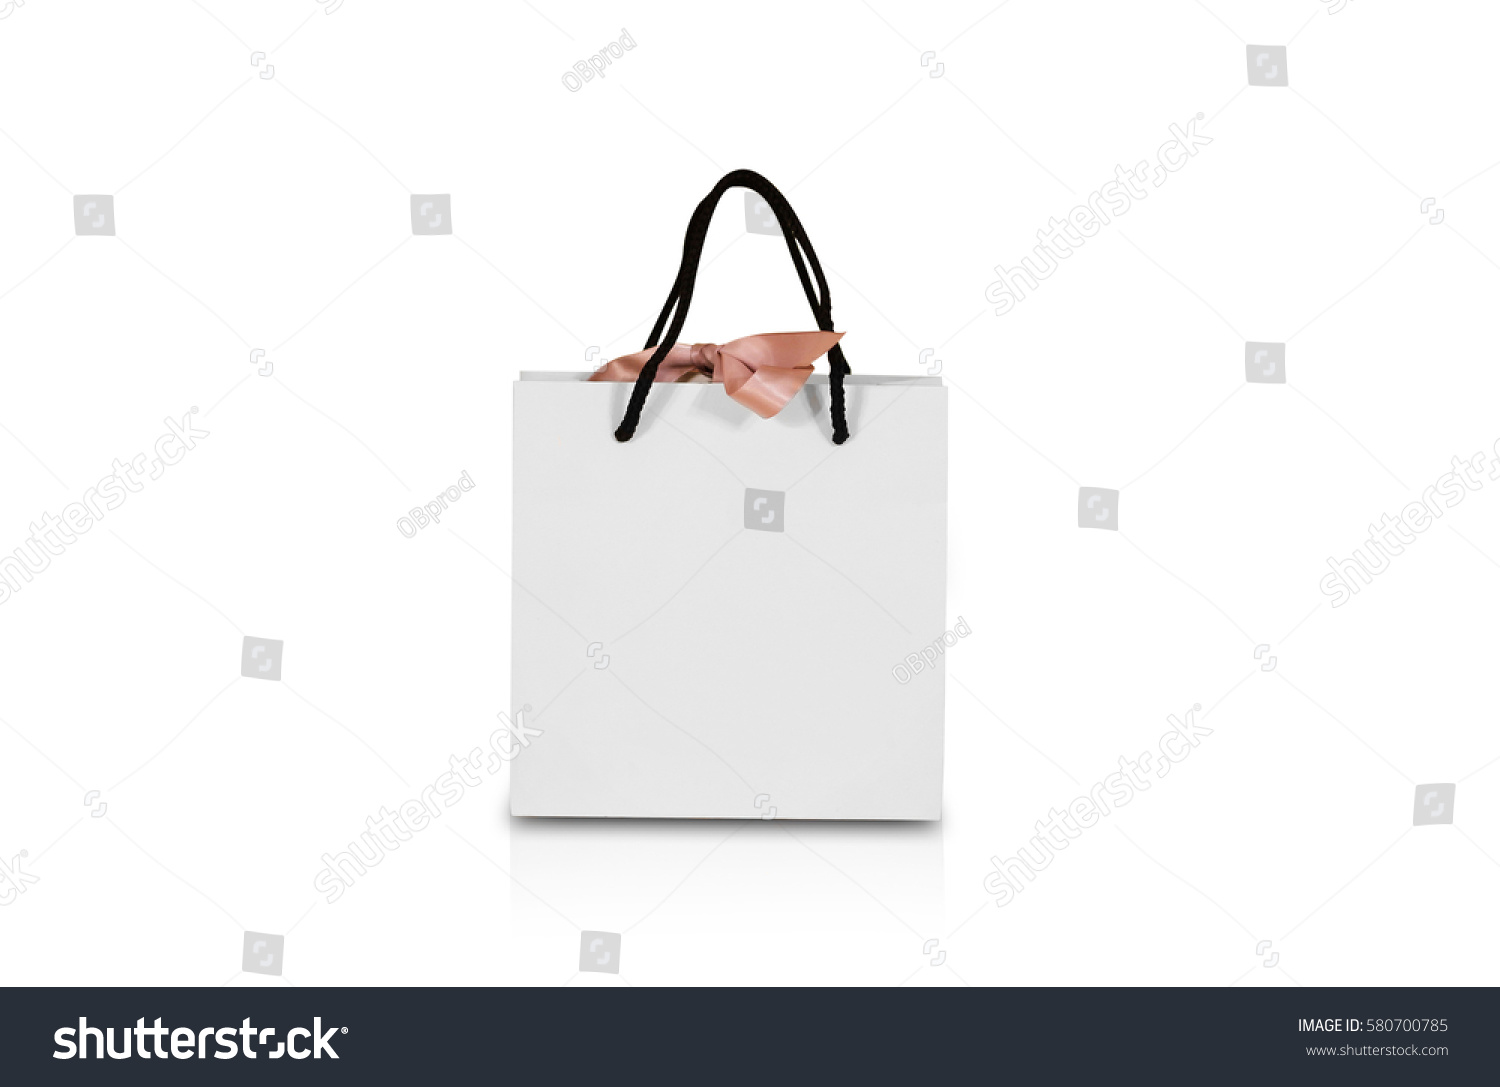 Blank white paper gift bag bow 580700785 shutterstock blank white paper gift bag with a bow mock up isolated on white background negle Image collections